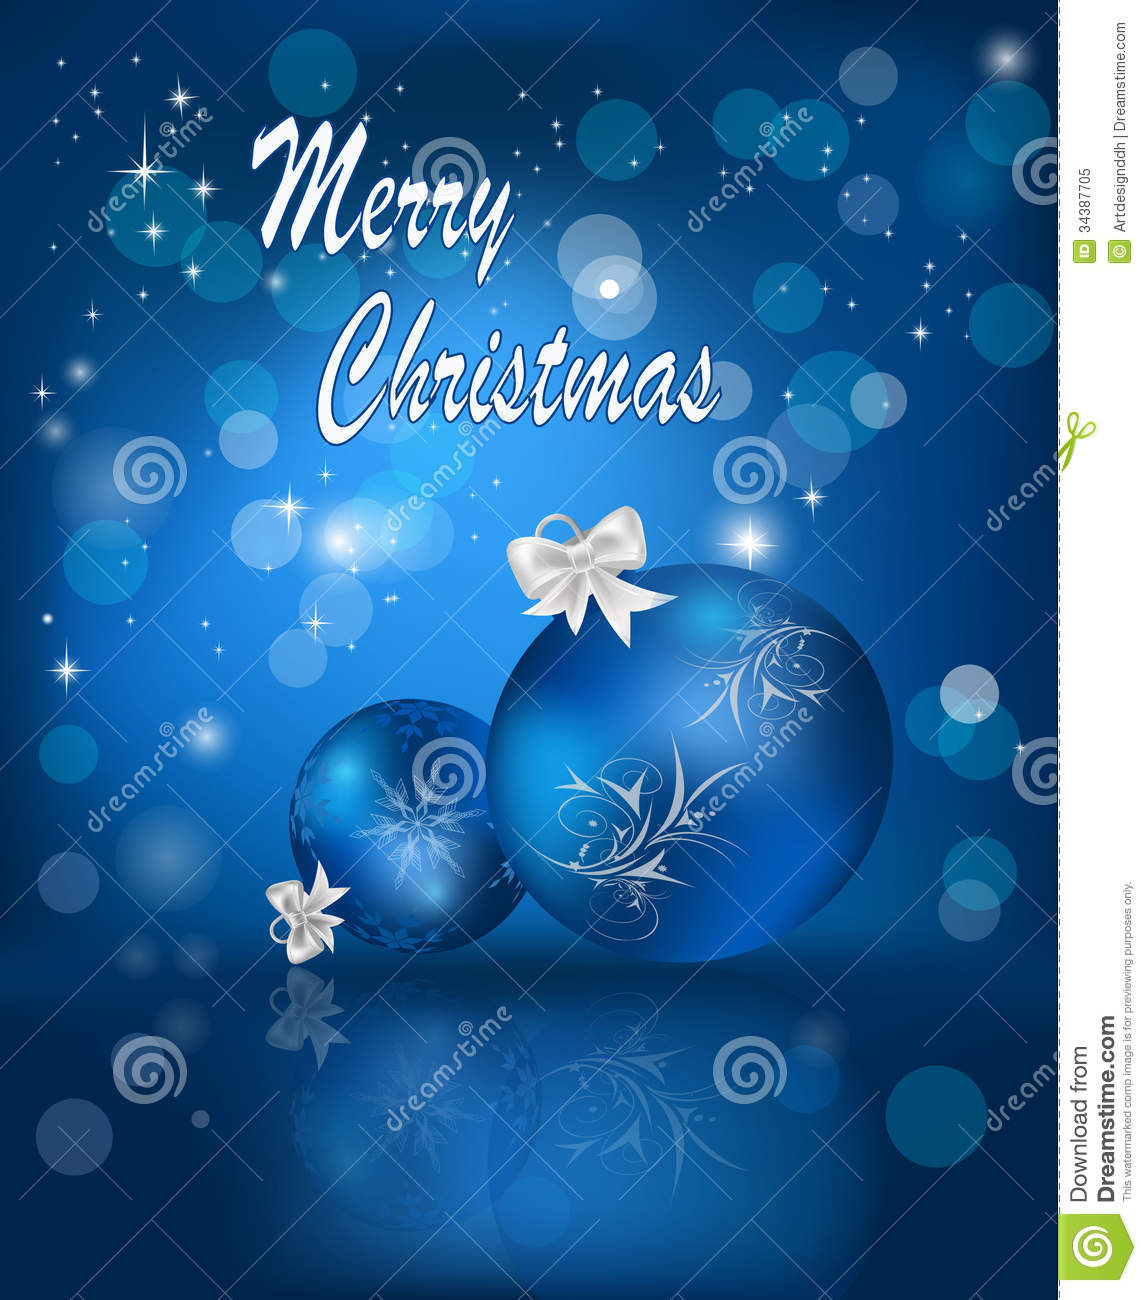 Blue christmas card royalty free stock photo image 34387705 - Is blue a christmas color ...